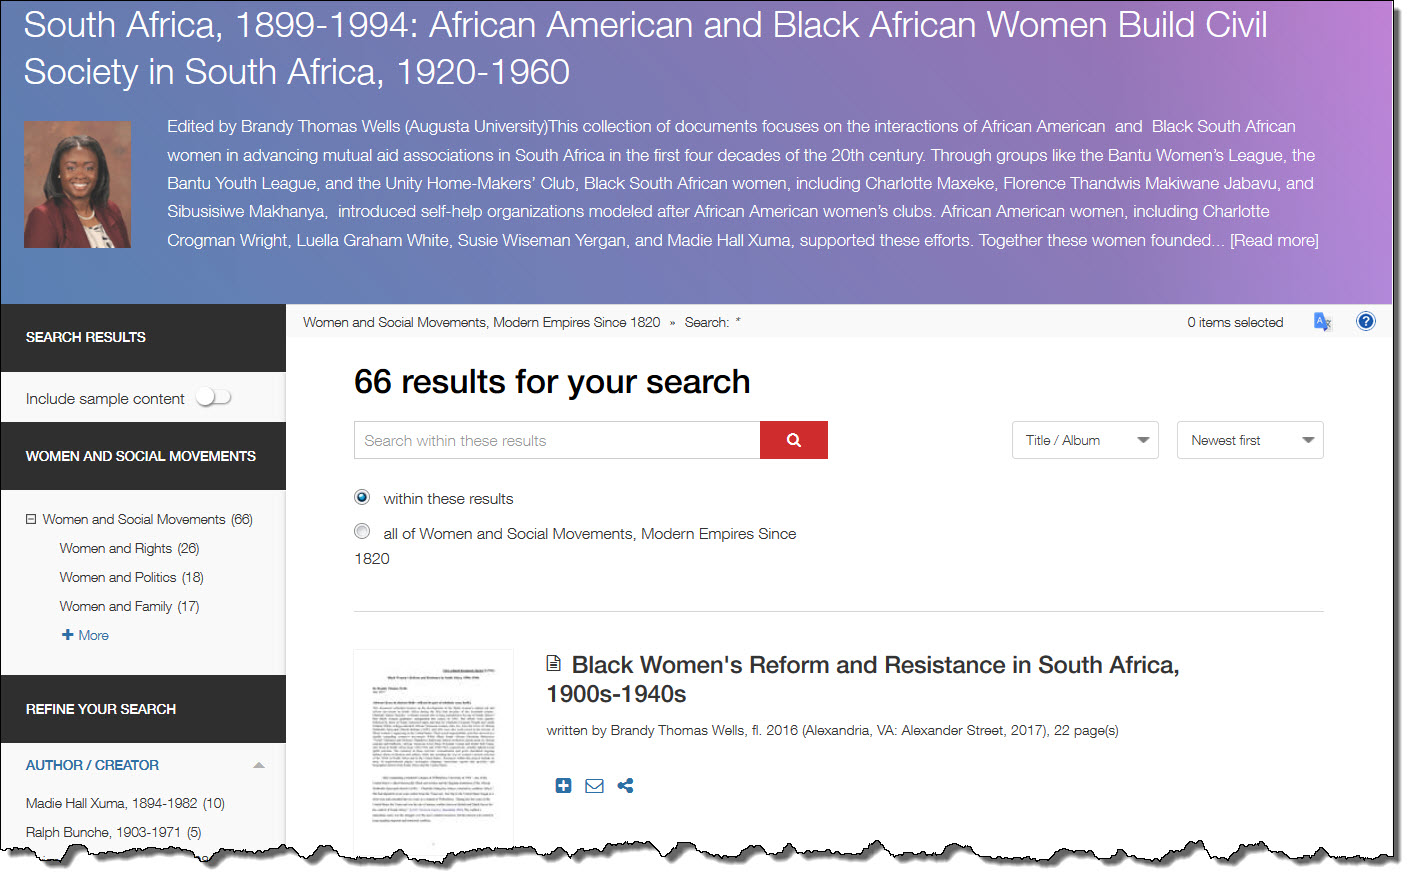 Document Cluster page for South Africa, 1899-1994: African American and Black African Women Build Civil Society in South Africa, 1920-1960